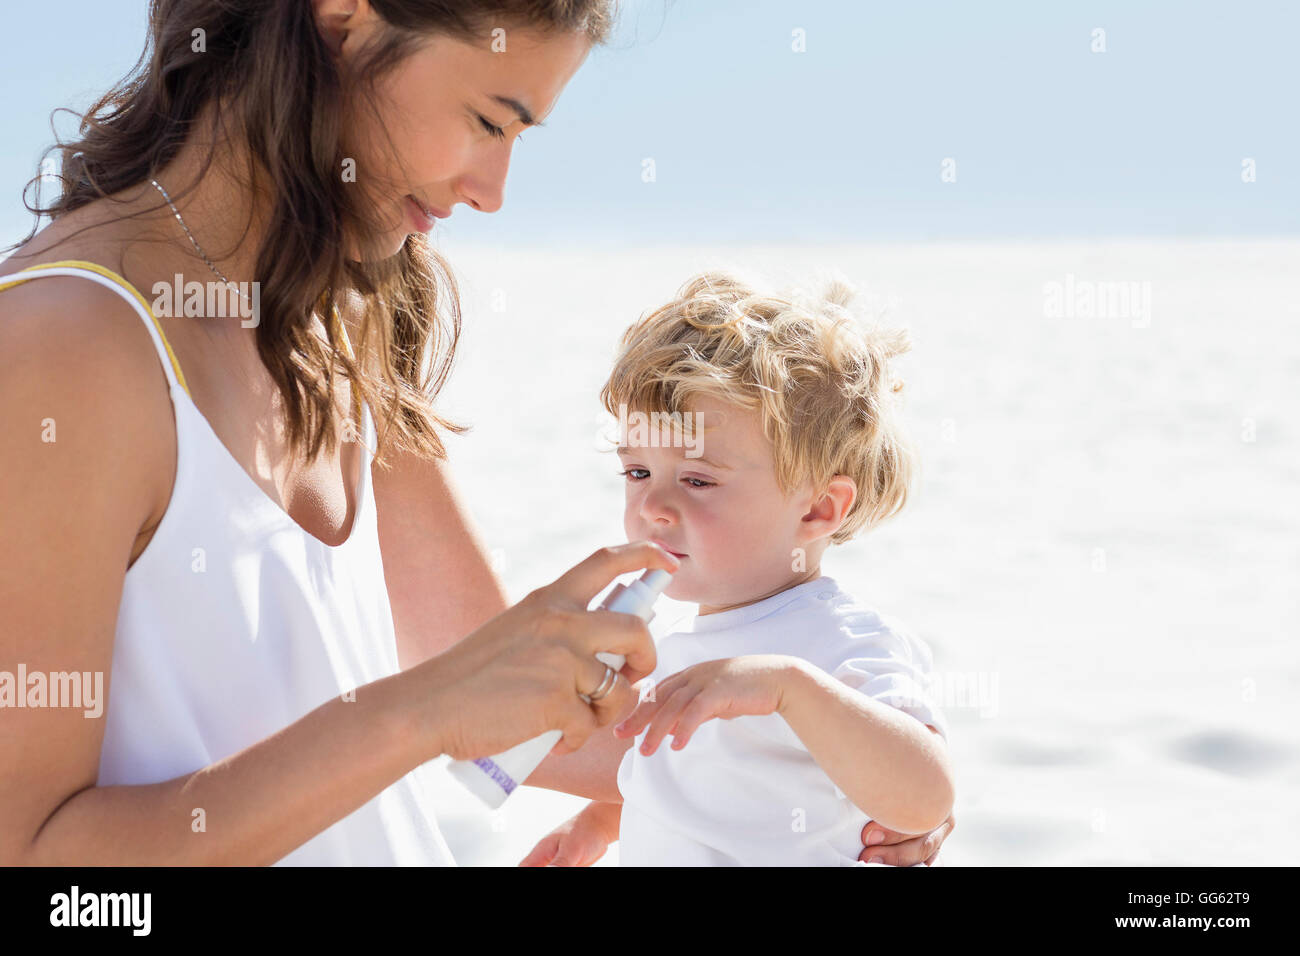 Woman spraying sunscreen on her baby hand - Stock Image